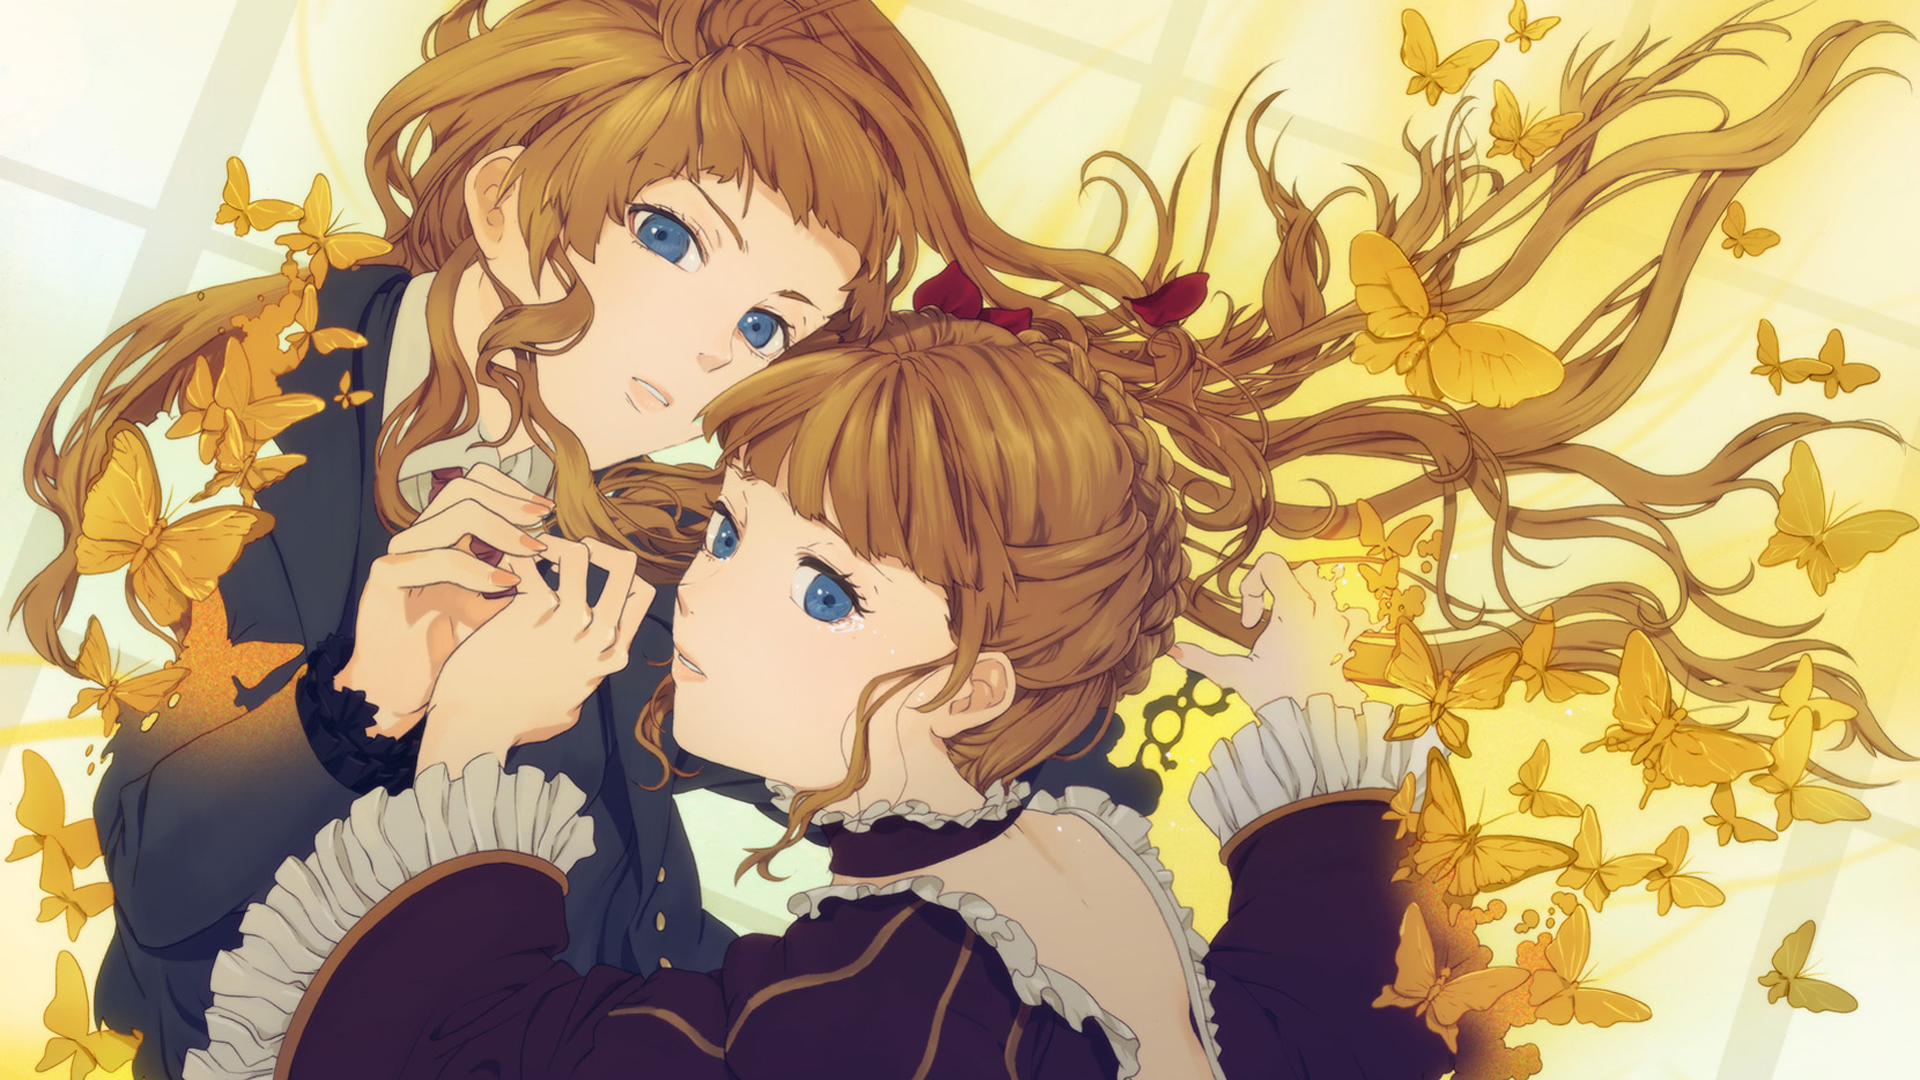 Anime - Umineko No Naku Koro Ni  Wallpaper